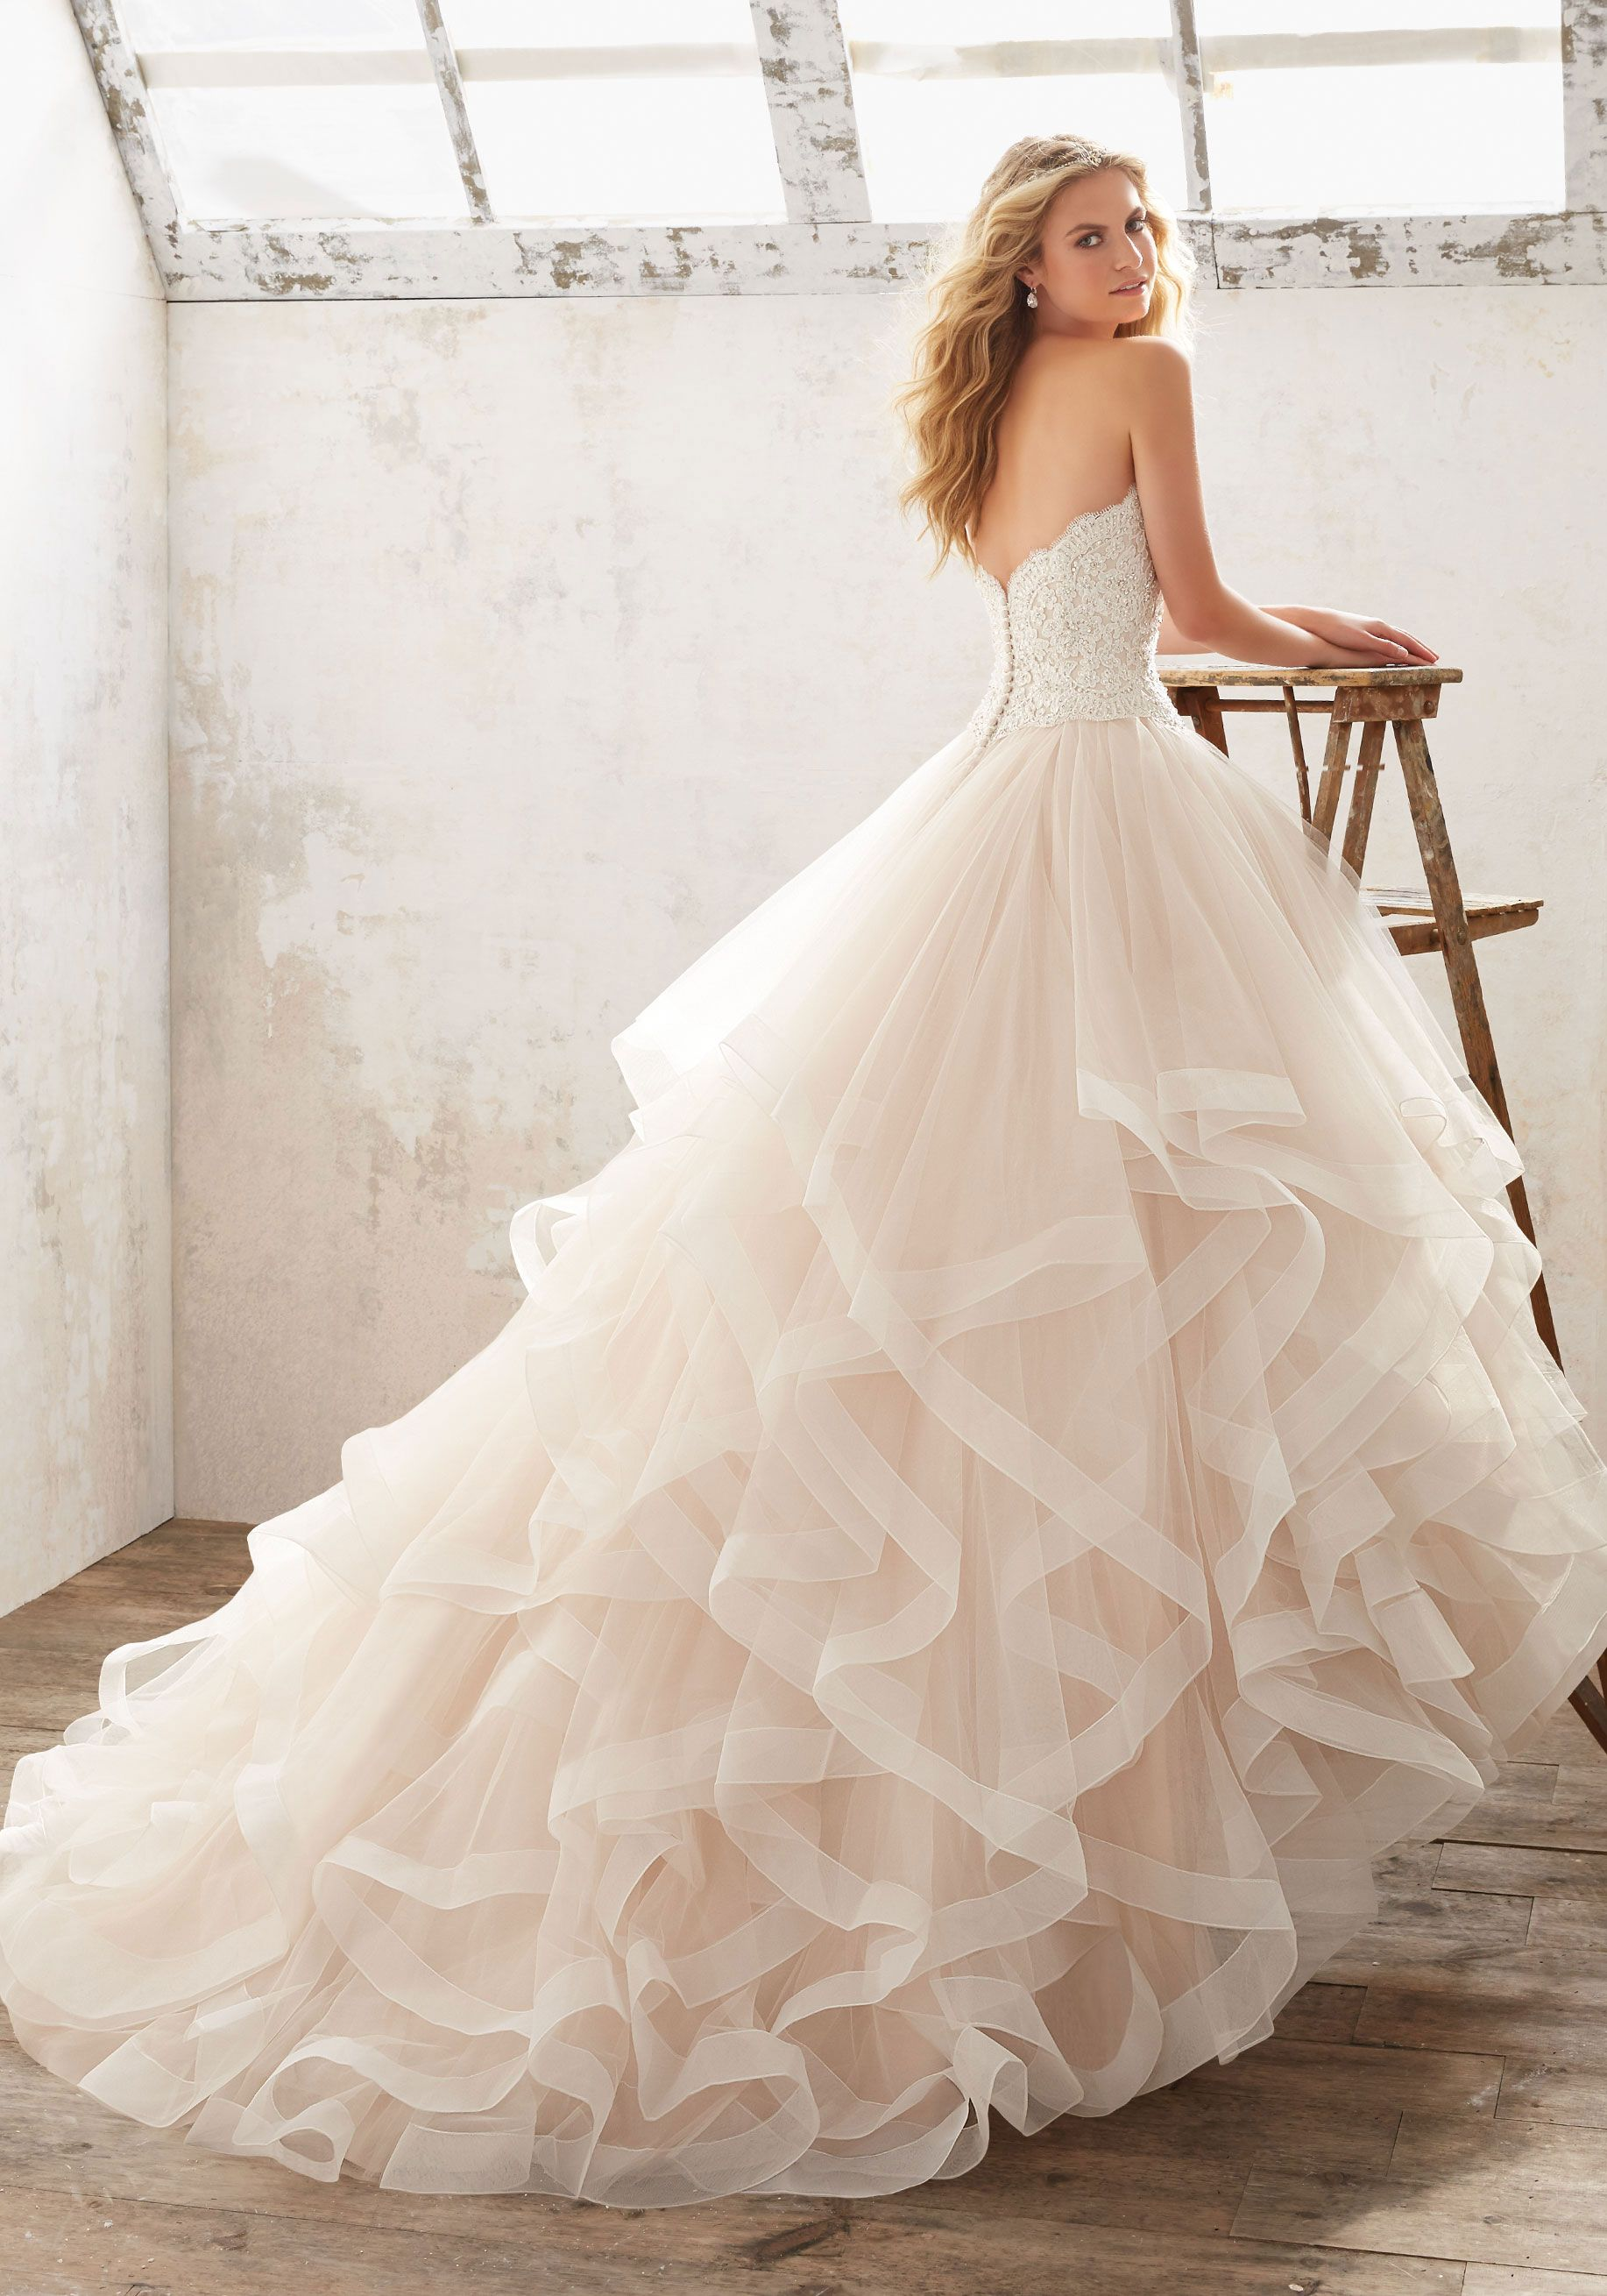 Mori lee madeline gardner wedding dress  Pin by Kathy Harland on Wedding dresses  Pinterest  Wedding dress